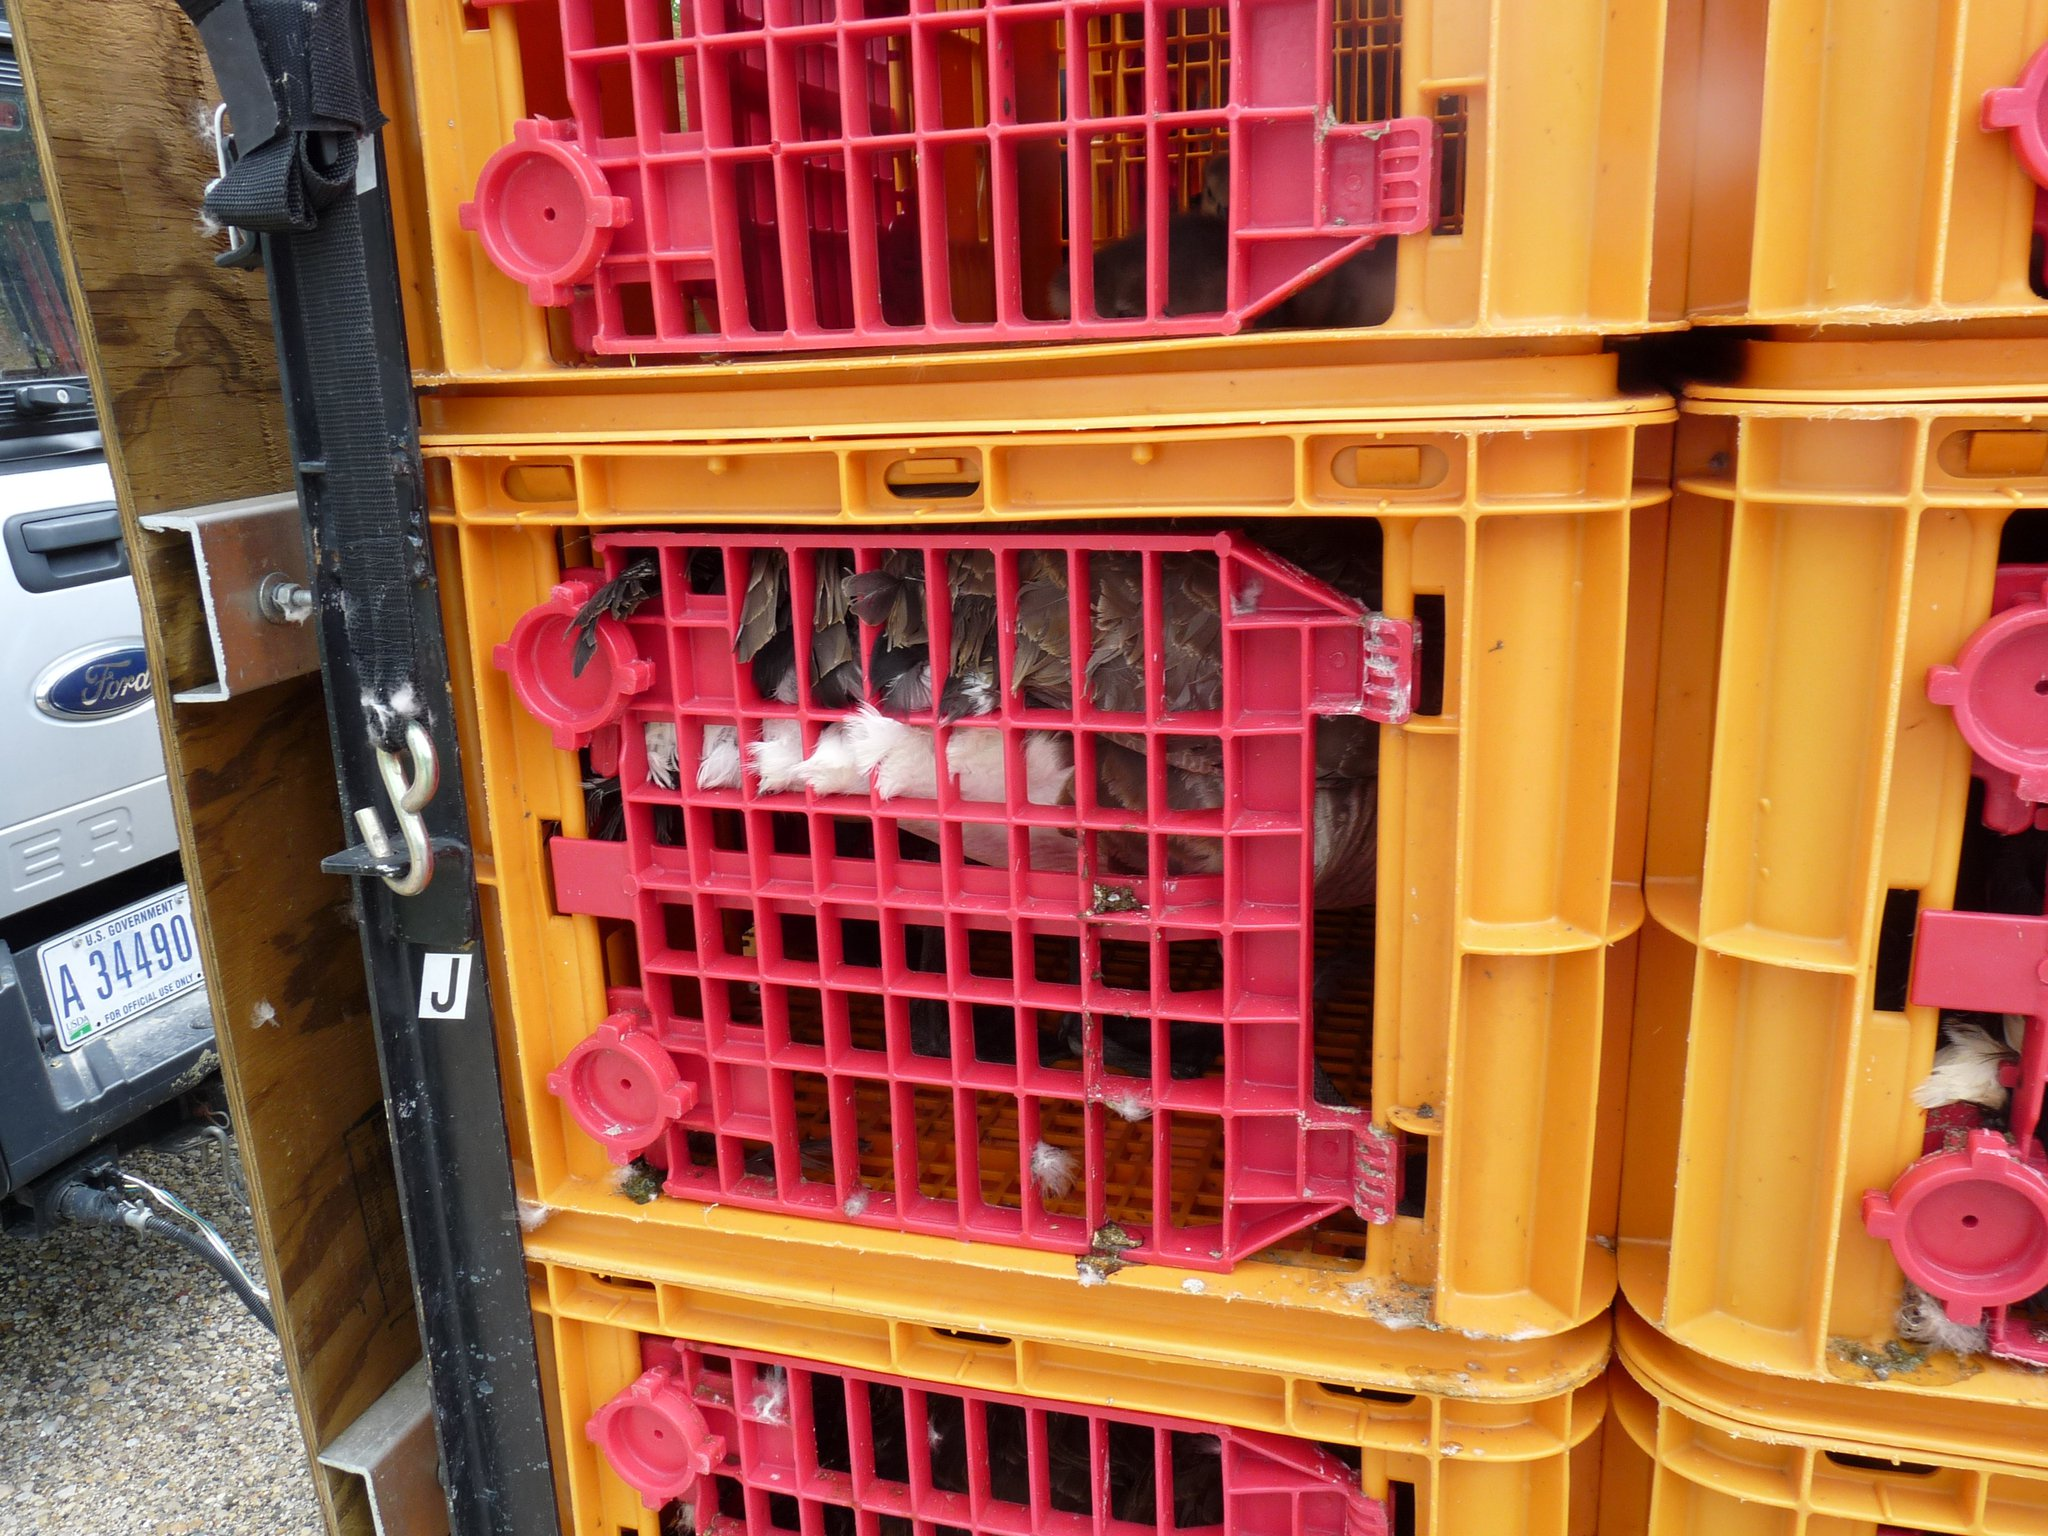 Canada Geese in Crates